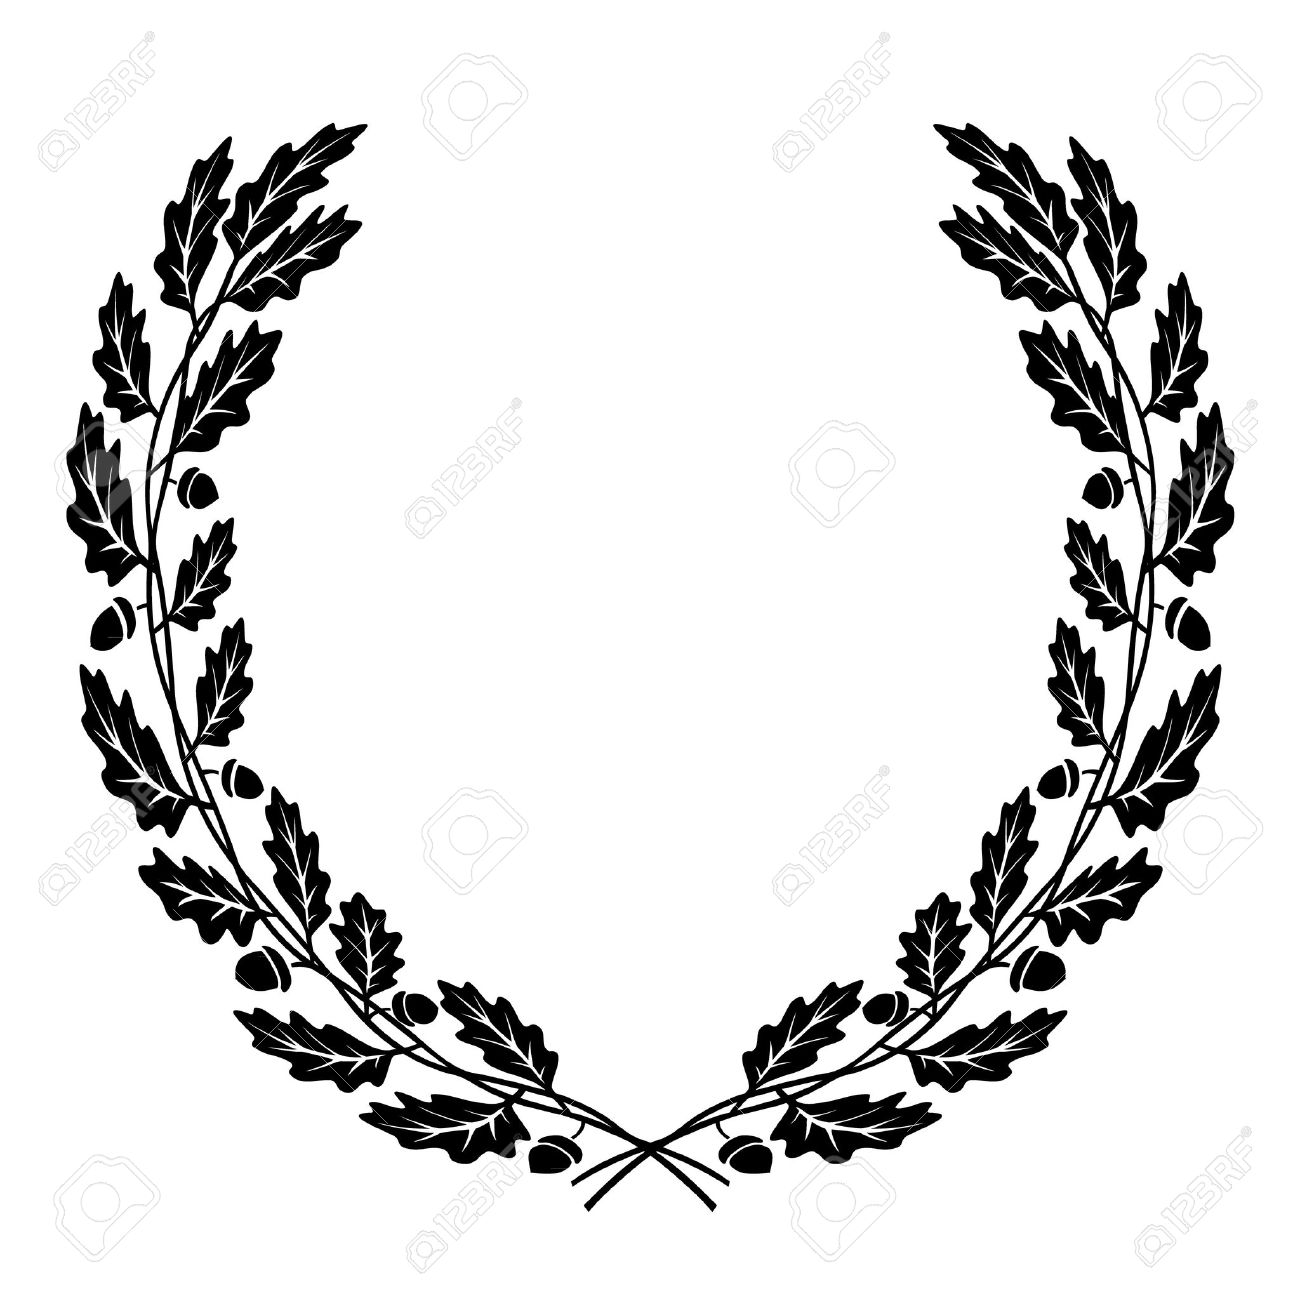 vector wreath of oak leaves black silhouette royalty free cliparts